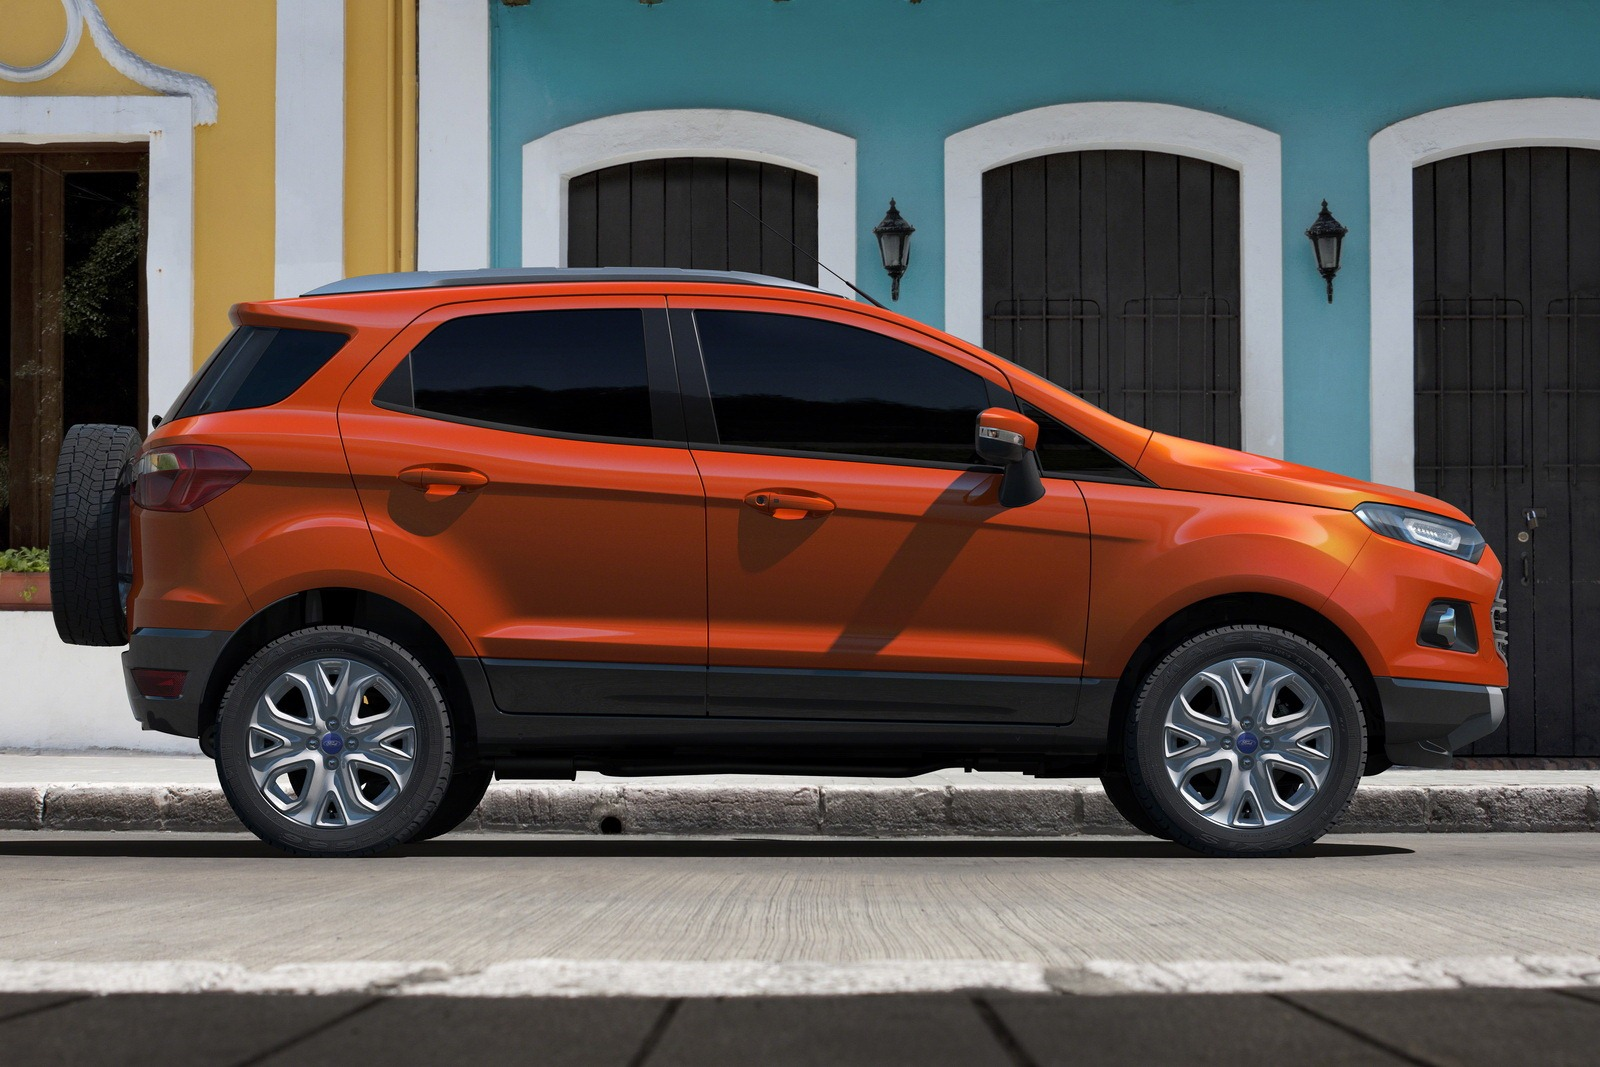 New Ford Ecosport India Video | AuTo CaR